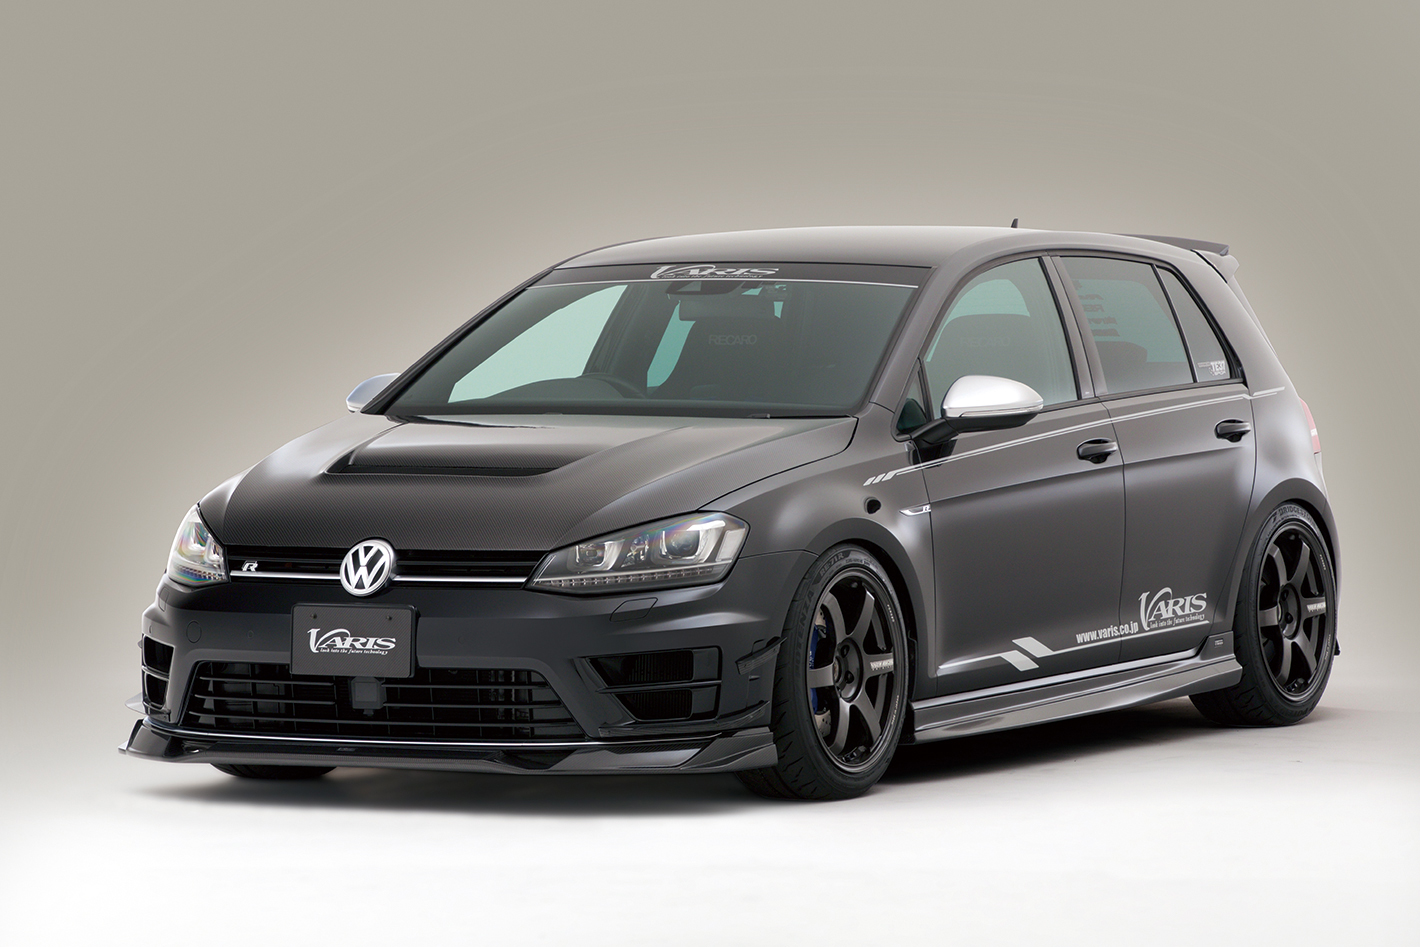 VARIS VW GOLF VII R